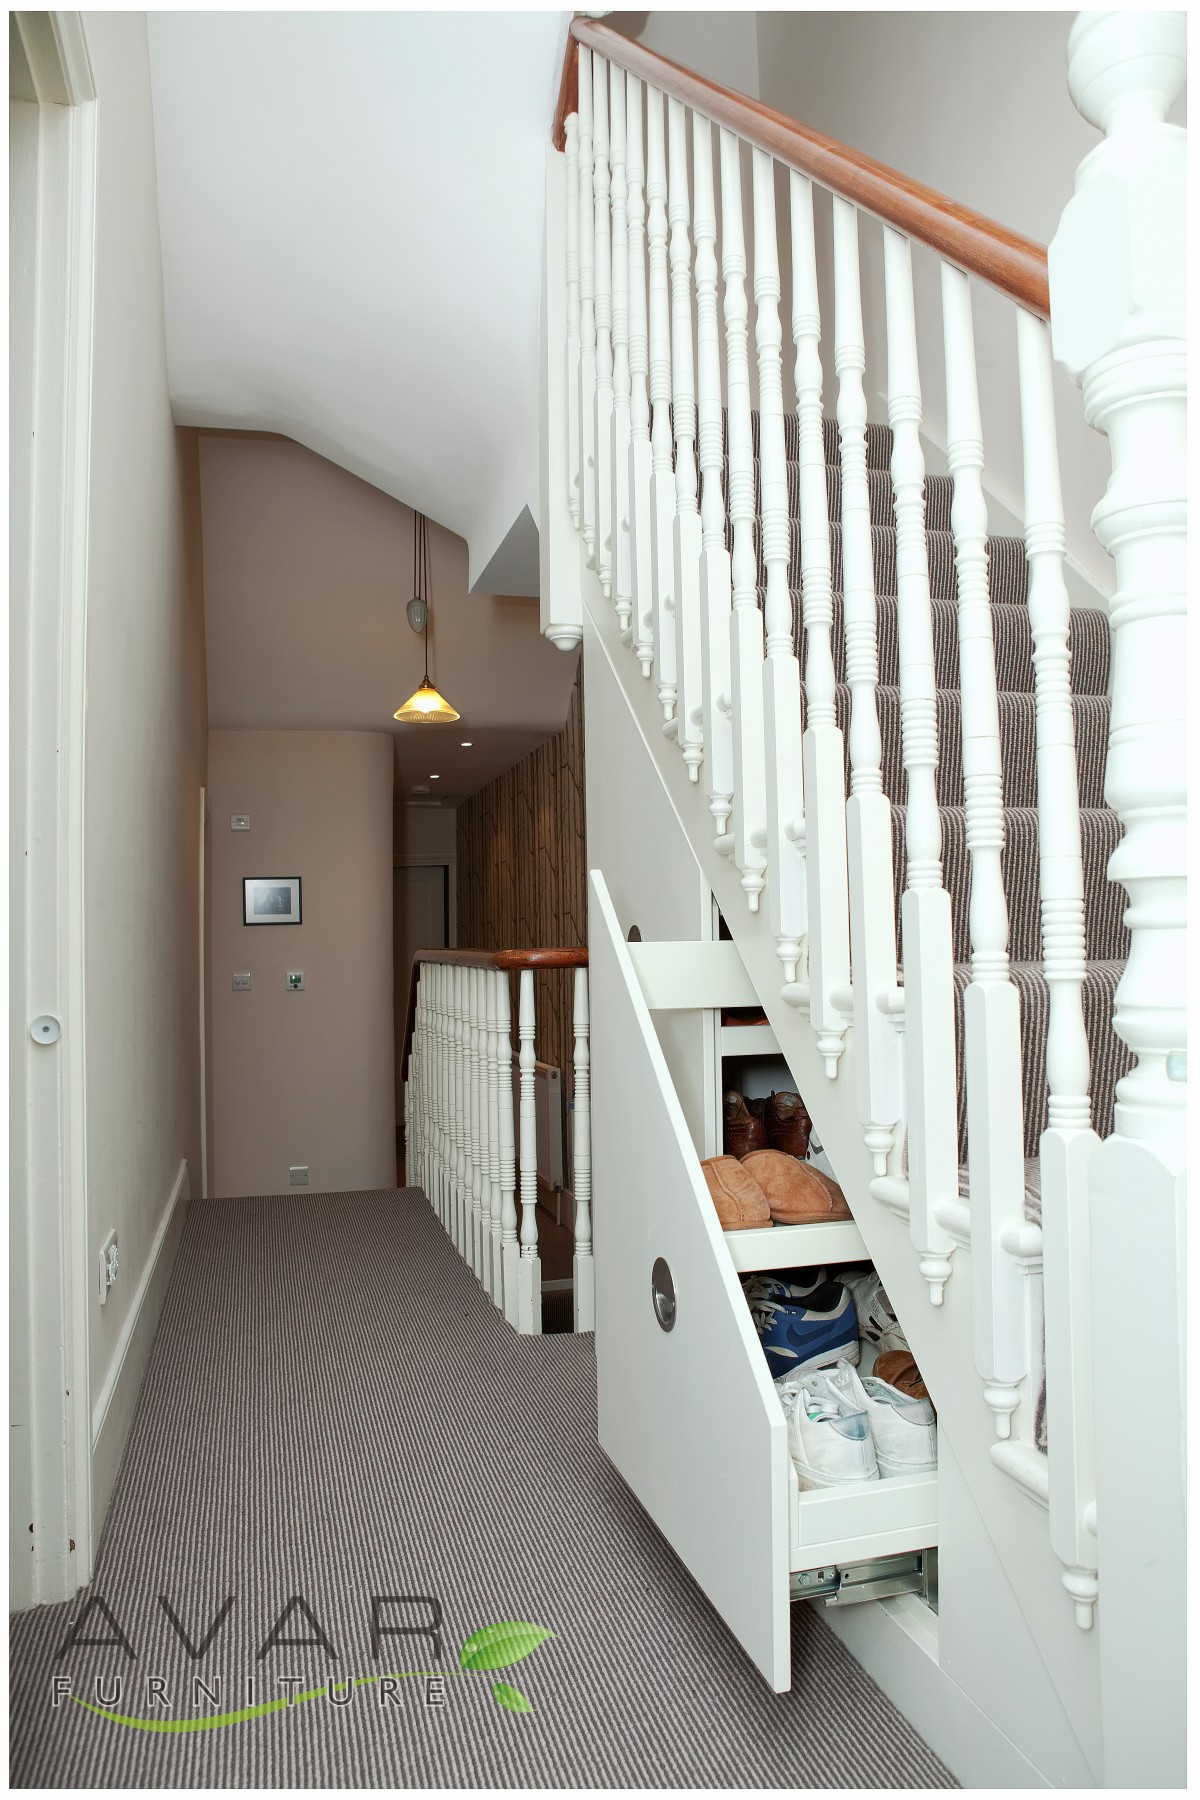 ƸӜƷ Under Stairs Storage Ideas Gallery 14 North London